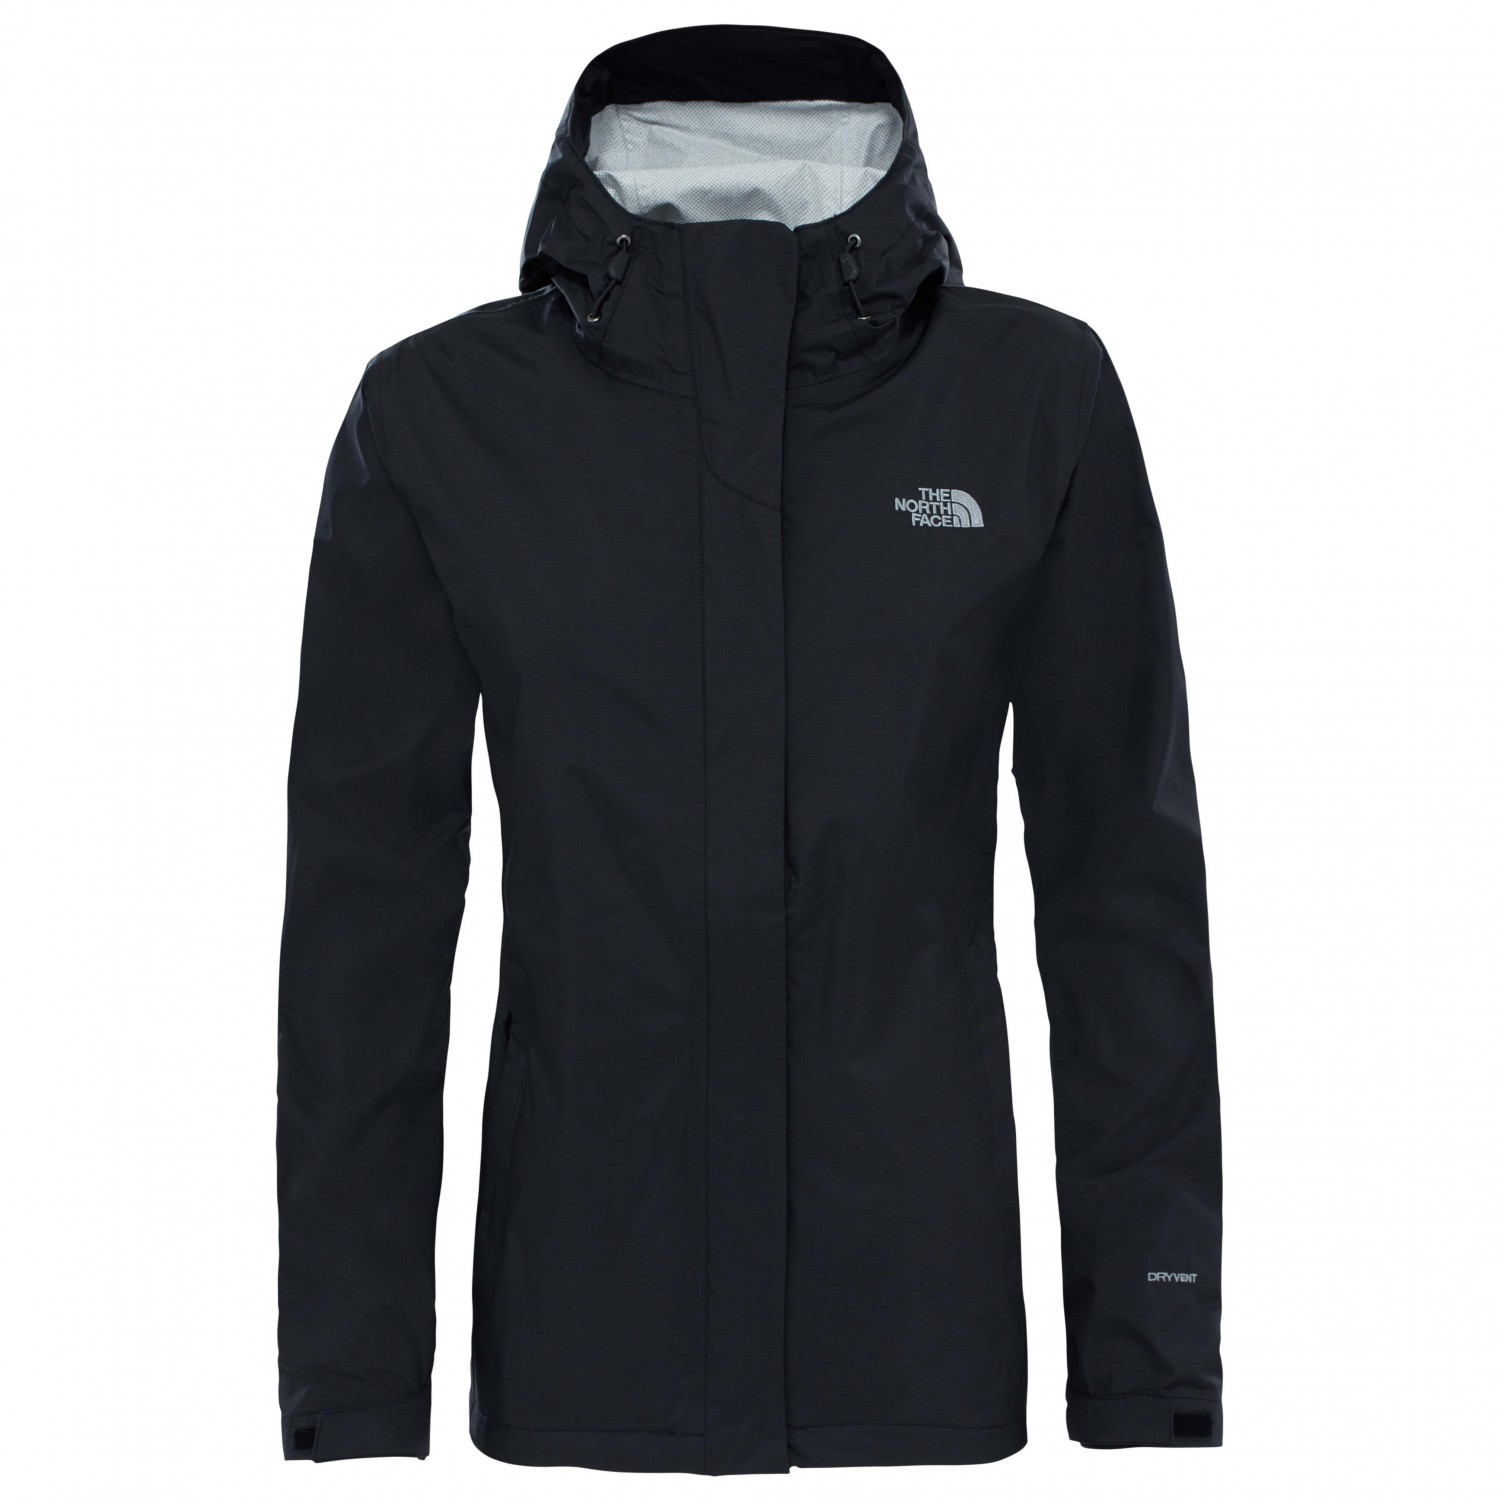 6eb0a880c The North Face - Women's Venture 2 Jacket - Waterproof jacket - TNF Black |  XS